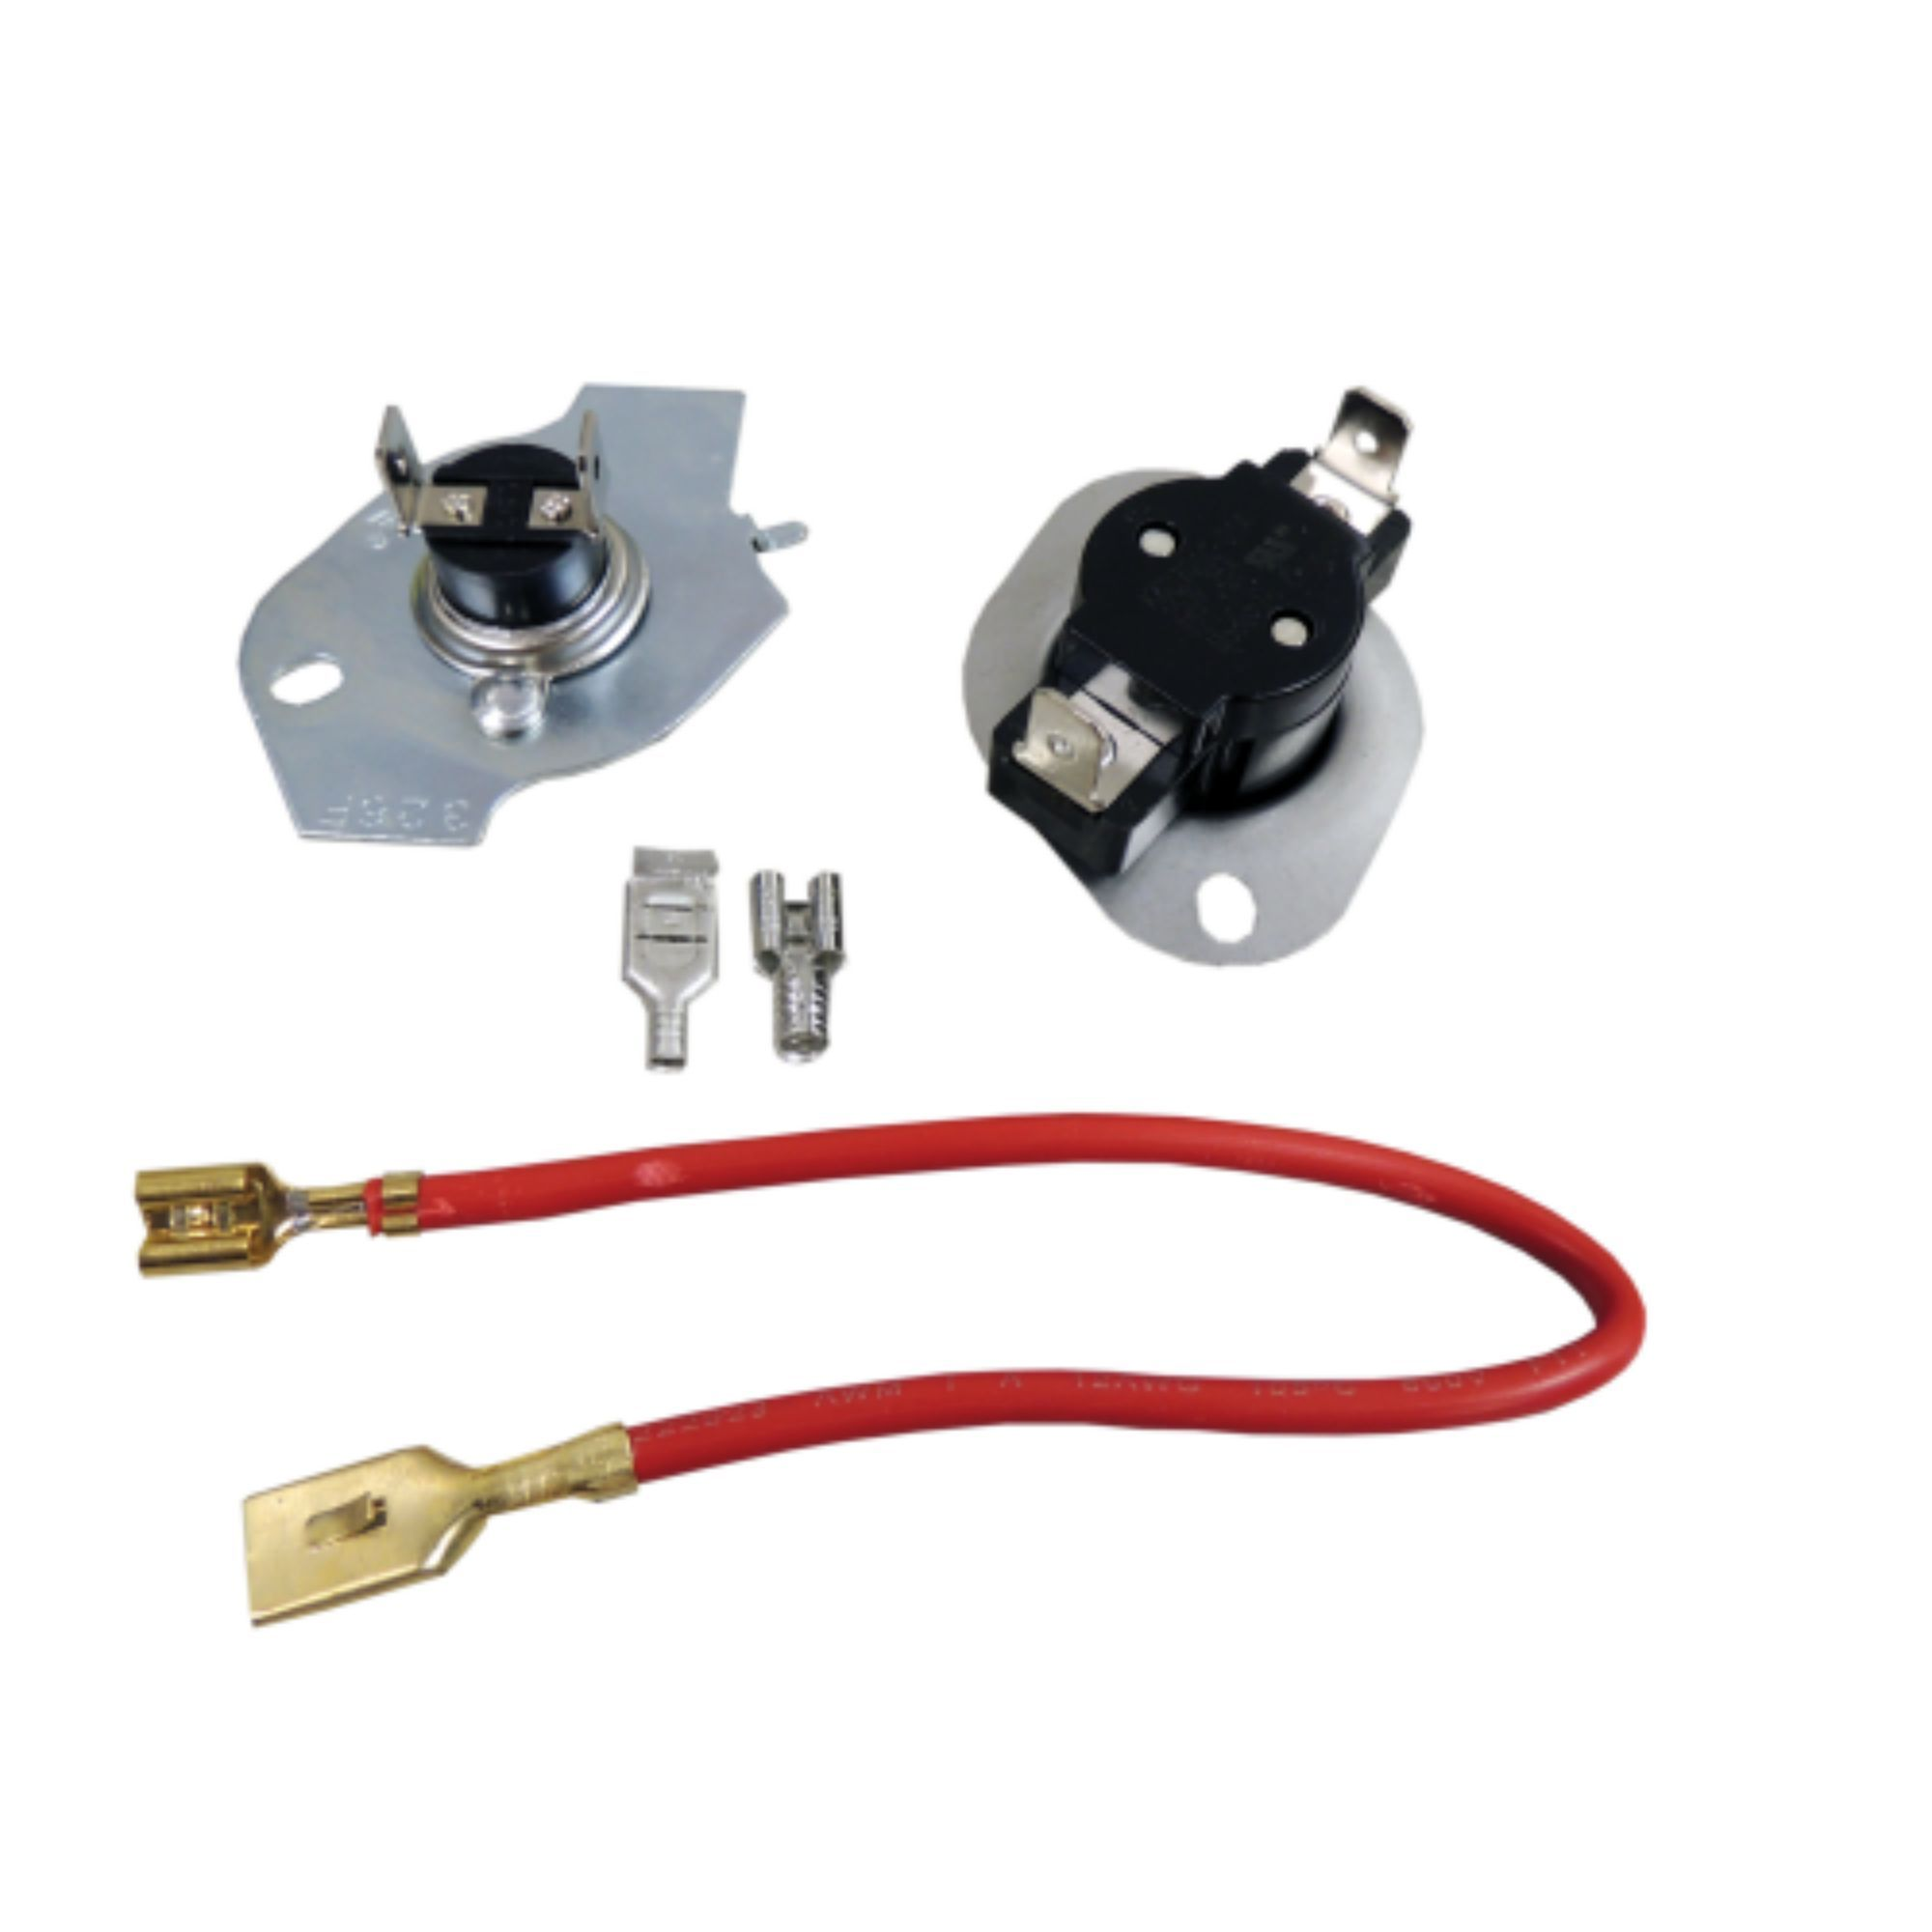 SET194 Dryer Thermostat Kit Repl For Whirlpool